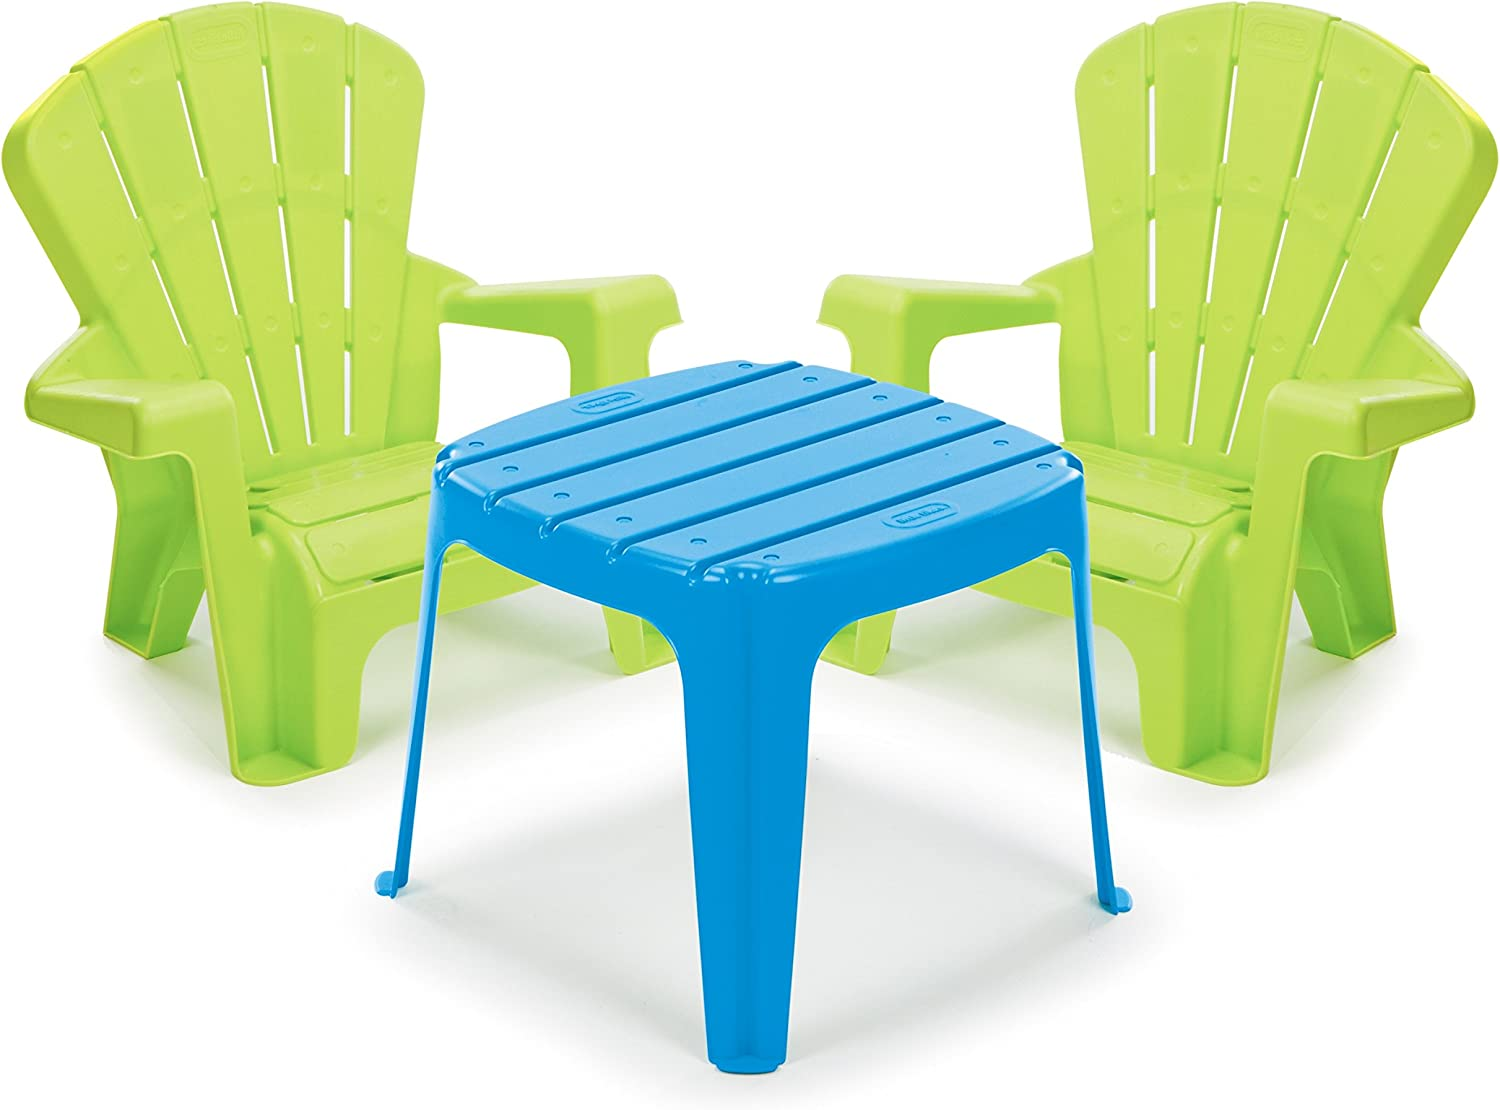 Little Tikes Garden Table and Chairs Set, bluee Green